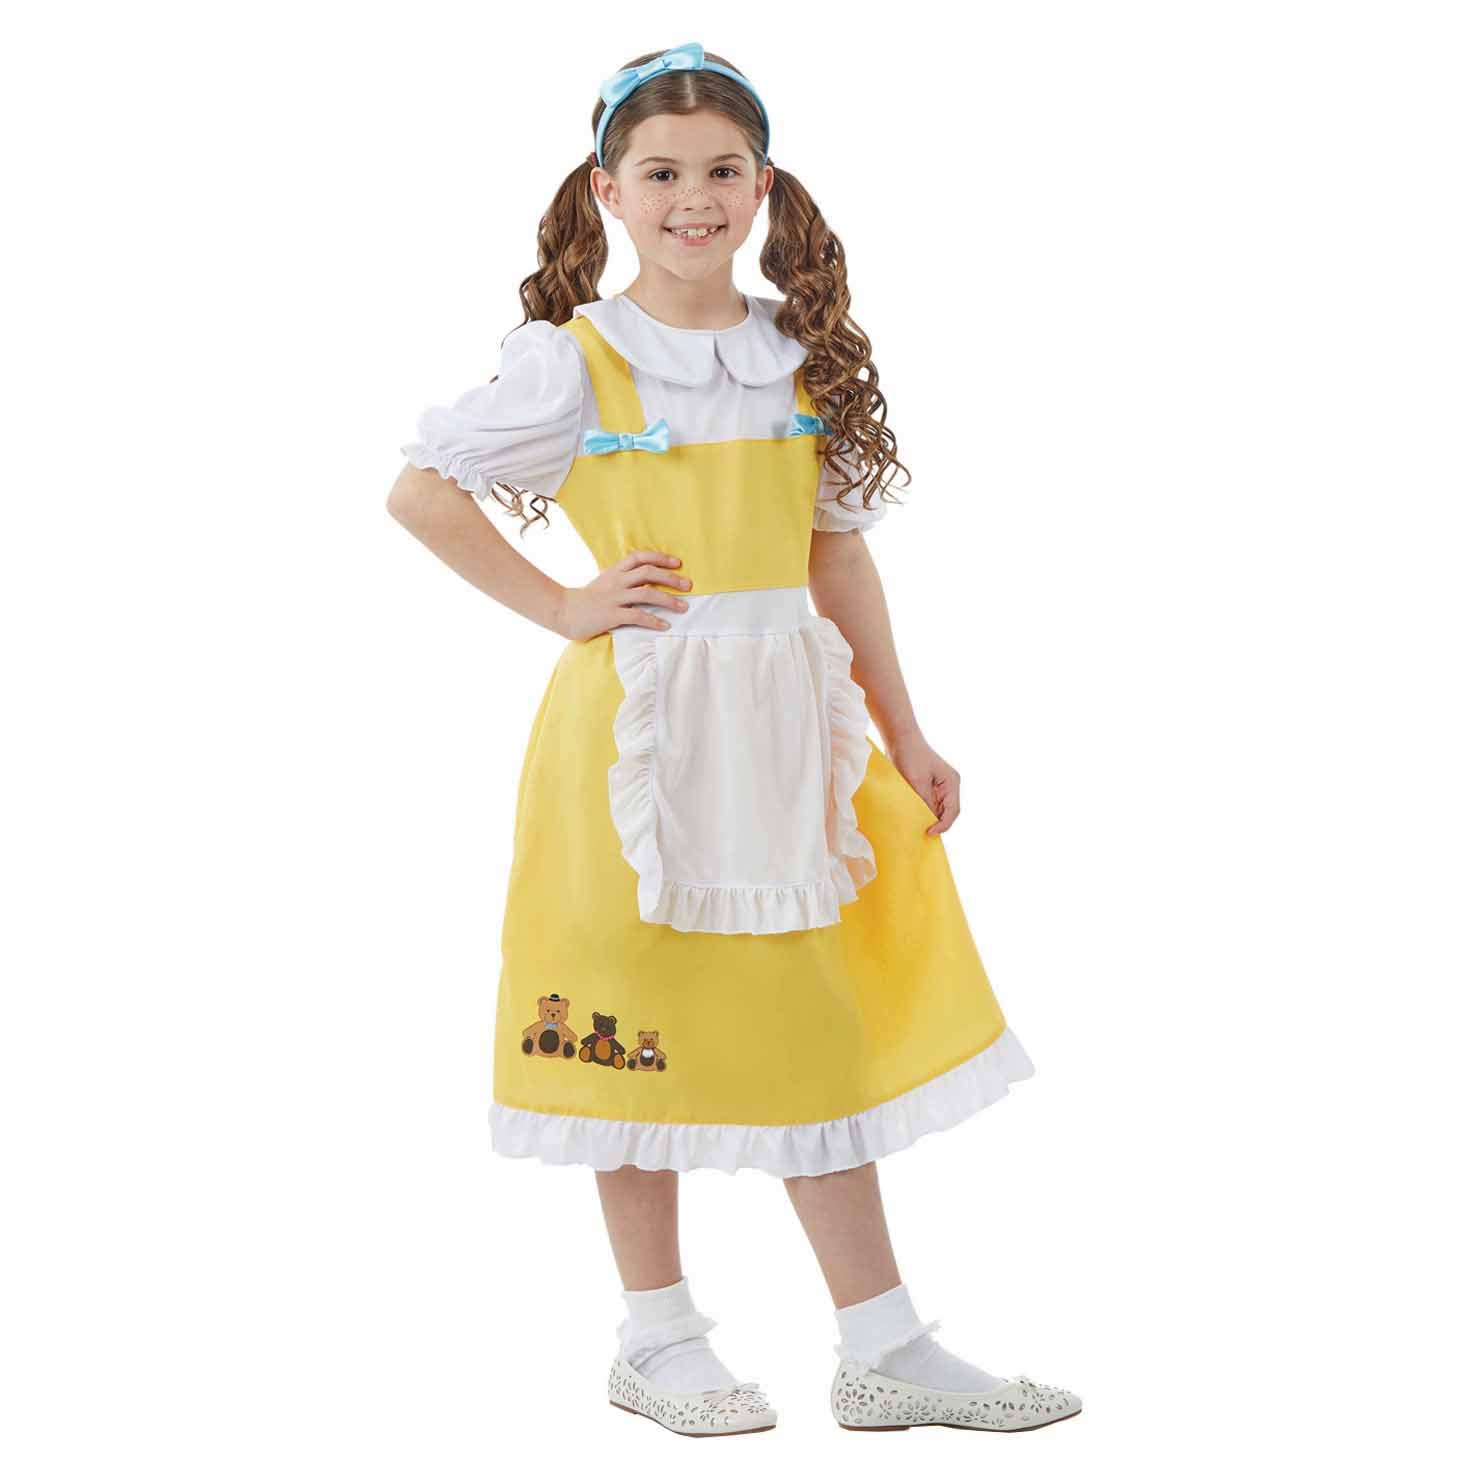 Girls Kids Goldilocks Fairytail Costume by Dress up America